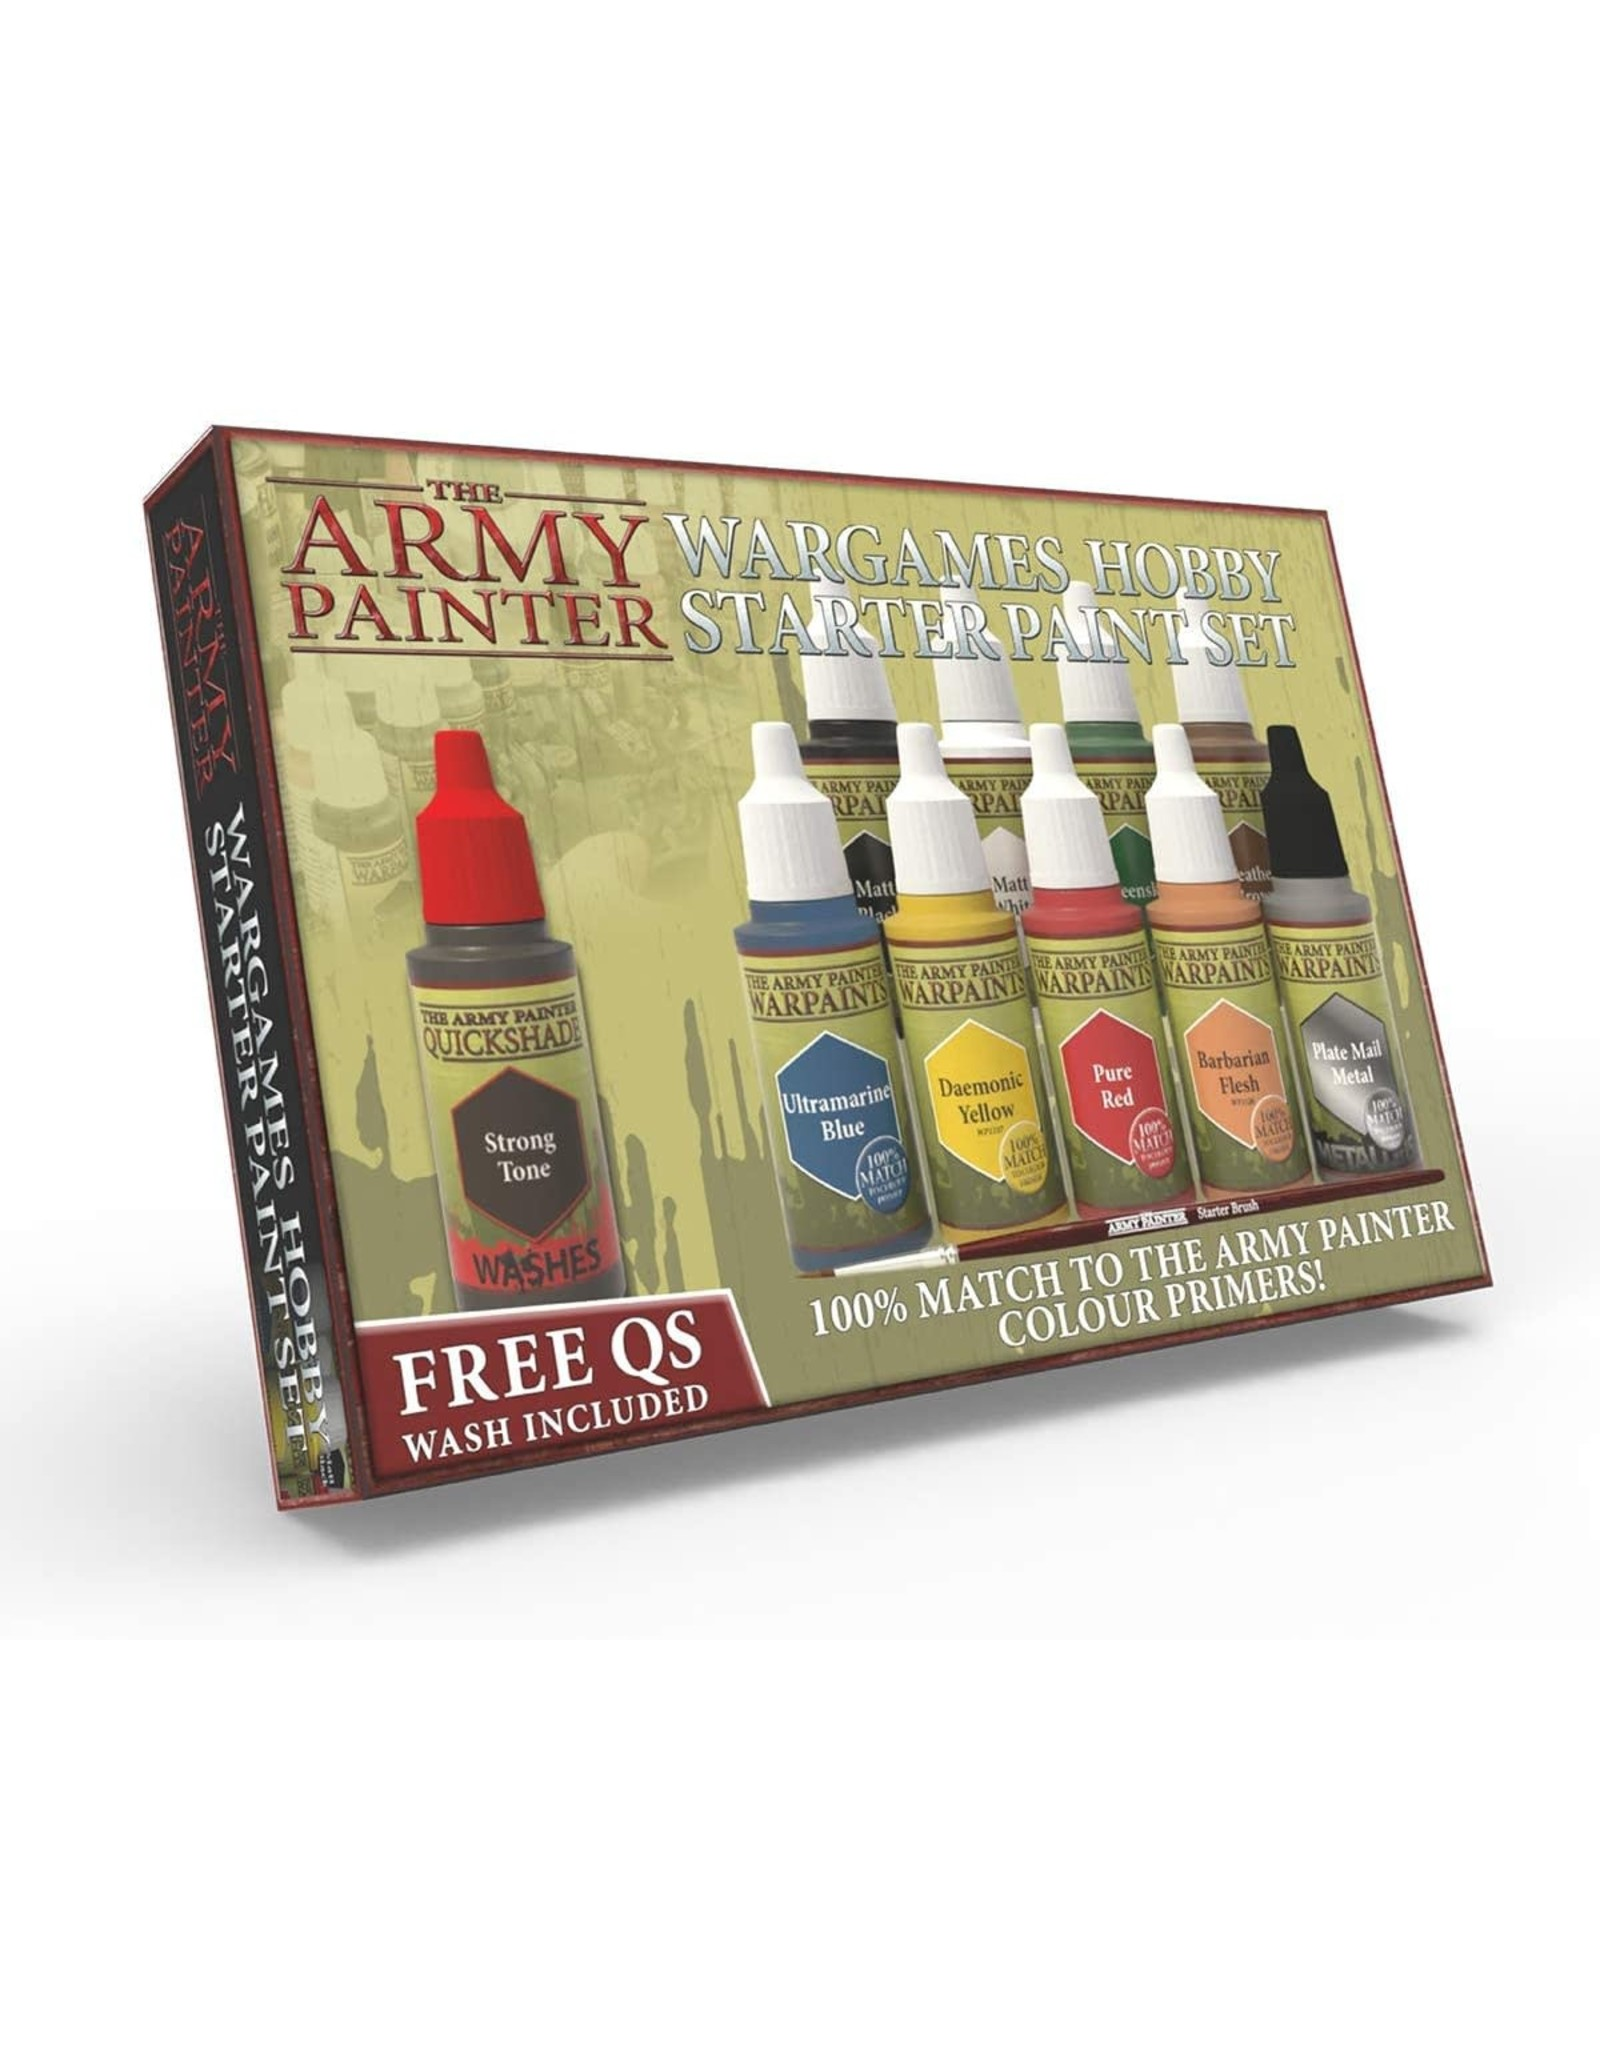 Army Painter Army Painter: Warpaints Starter Paint Set